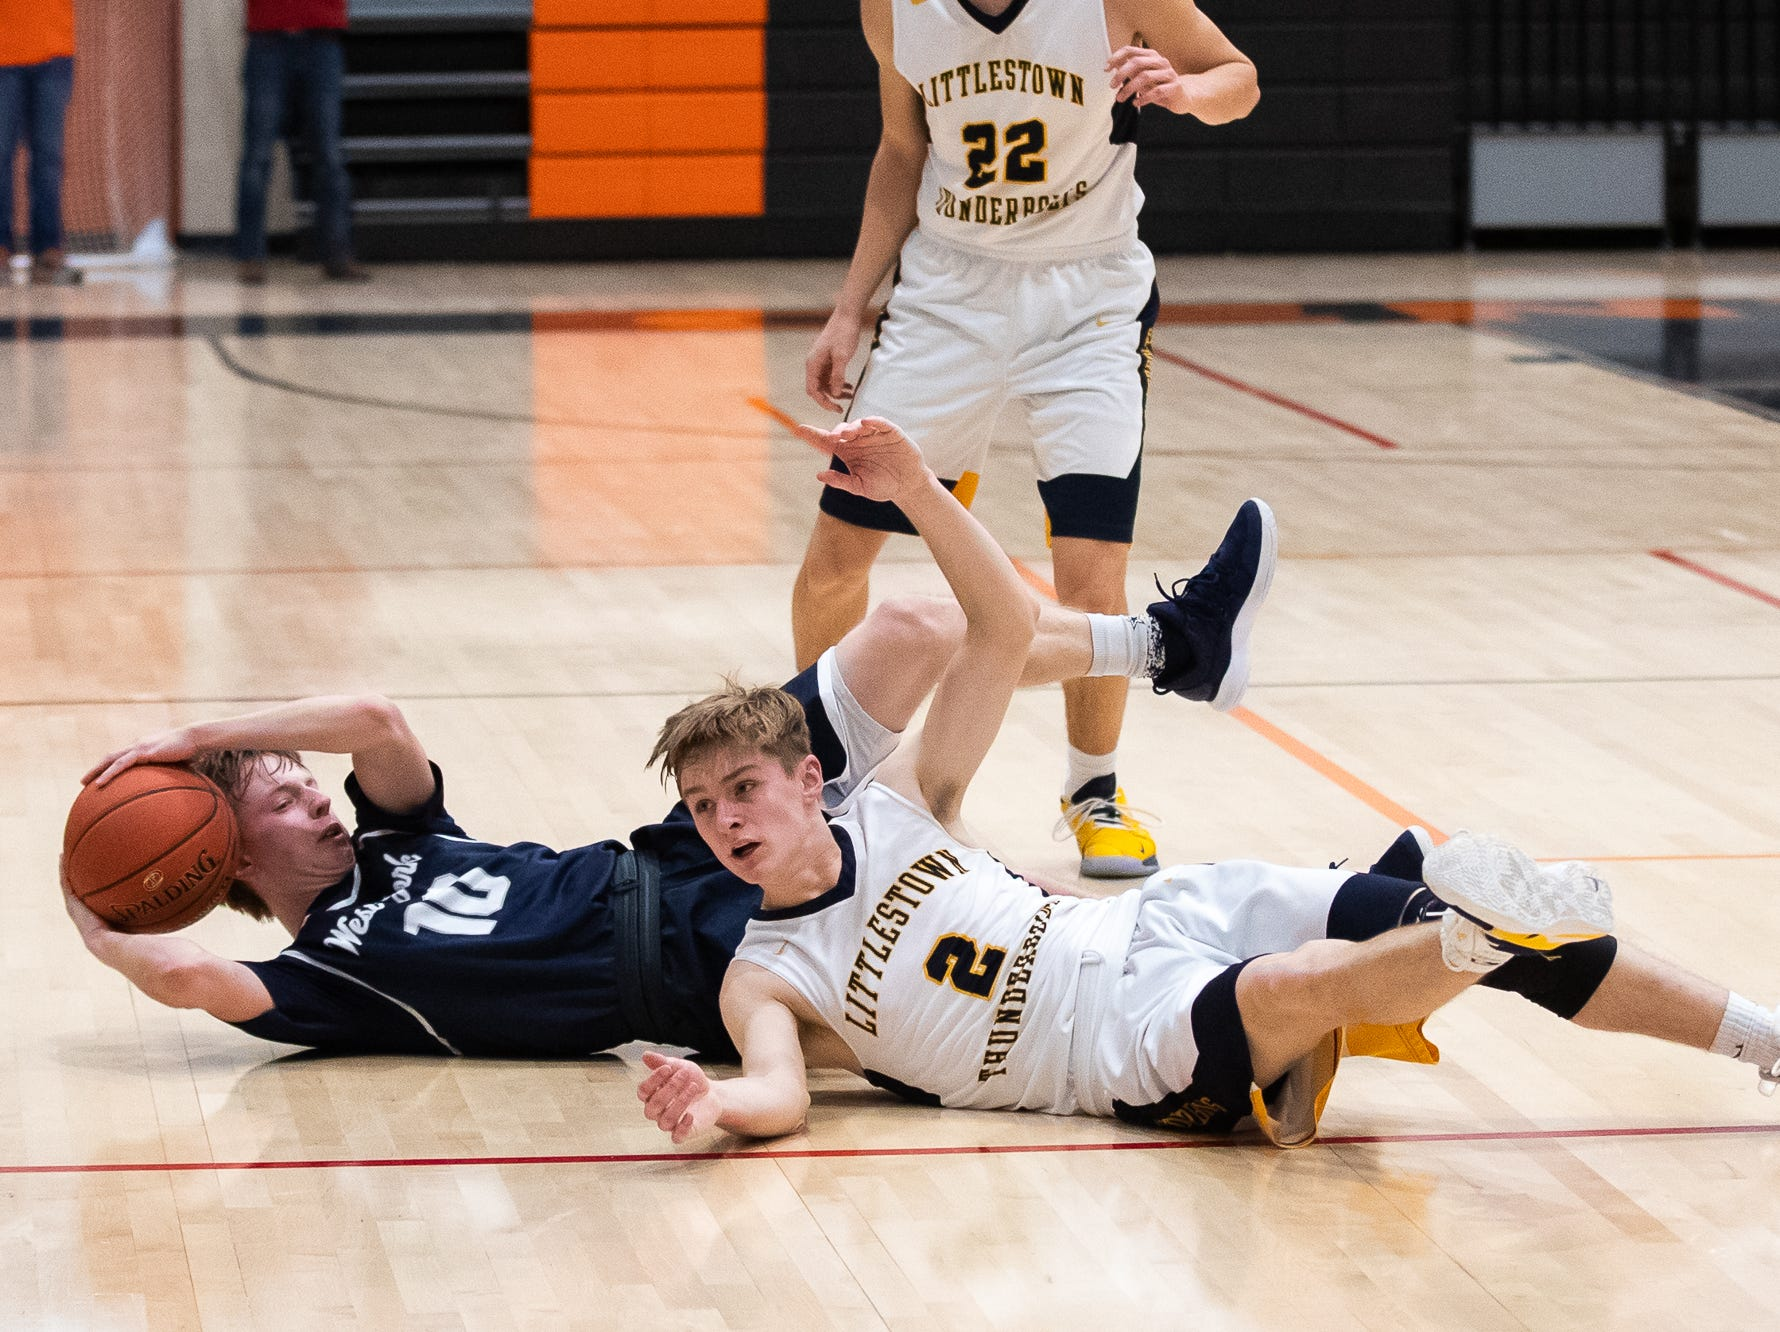 West York's Corey Wise (10) intercepts the ball from Littlestown's Jakob Lane (2) during the first half of the YAIAA boys' basketball quarterfinals between Littlestown and West York, Saturday, Feb. 9, 2019, at Central York High School. West York led Littlestown 33-31 at the half.